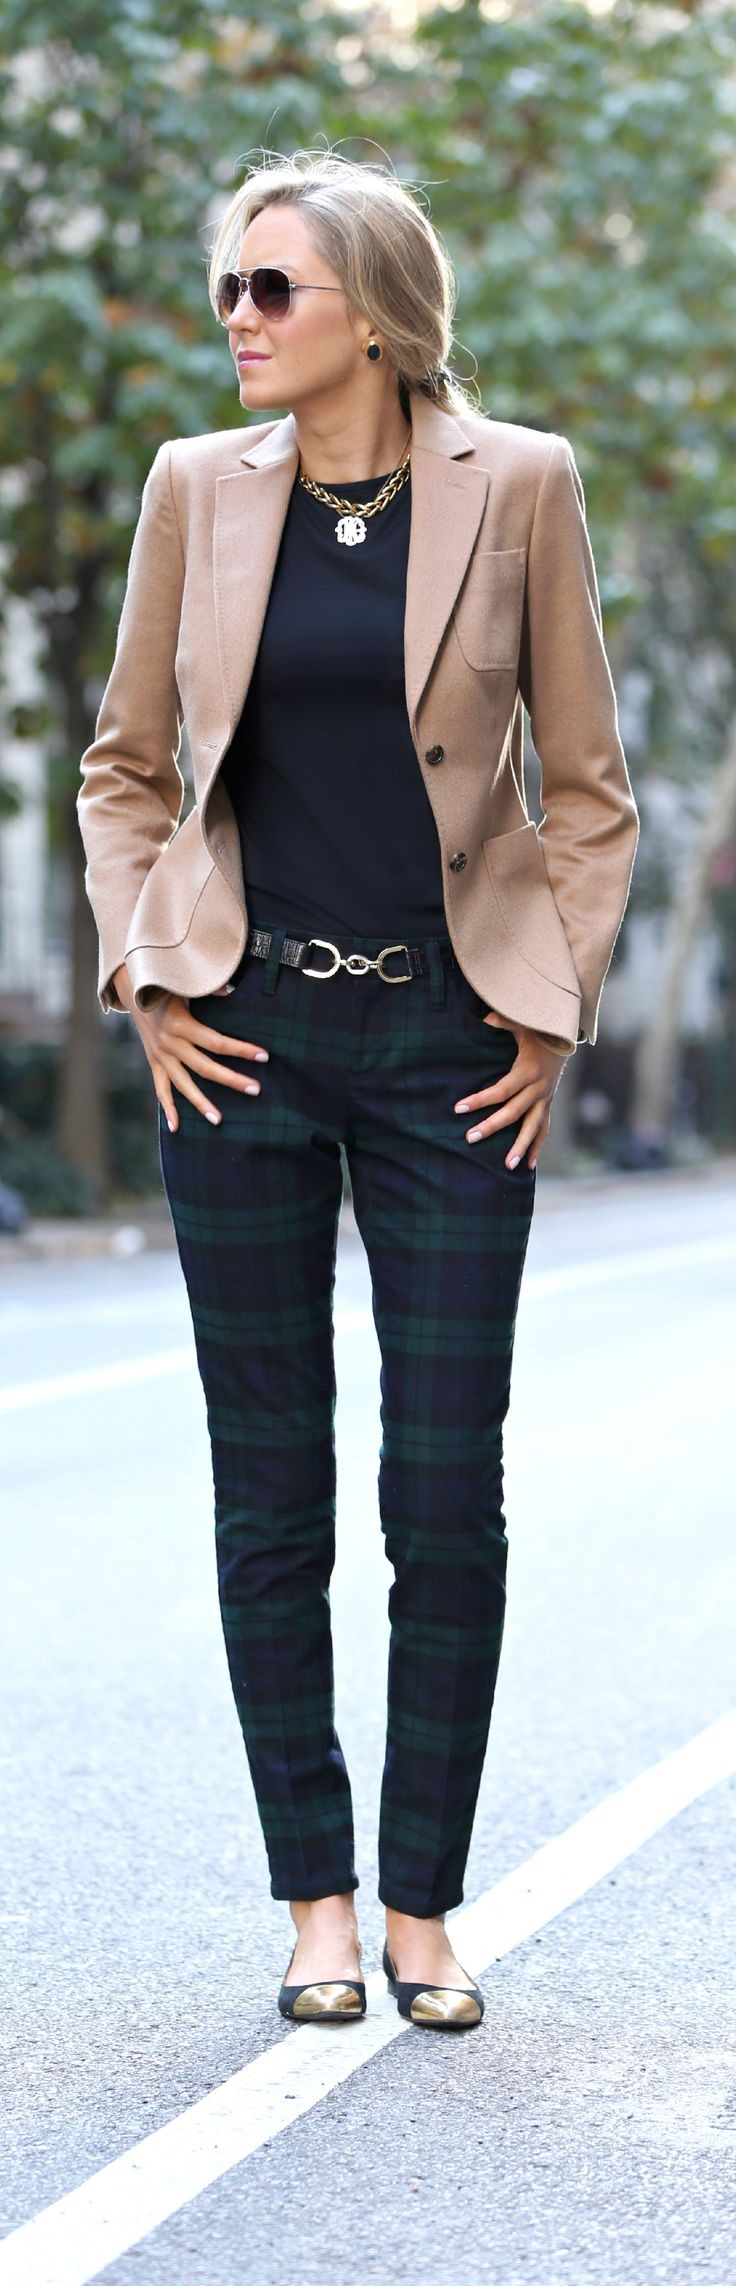 25 Ways to Wear a Blazer This Fall 2017 | Become Chic